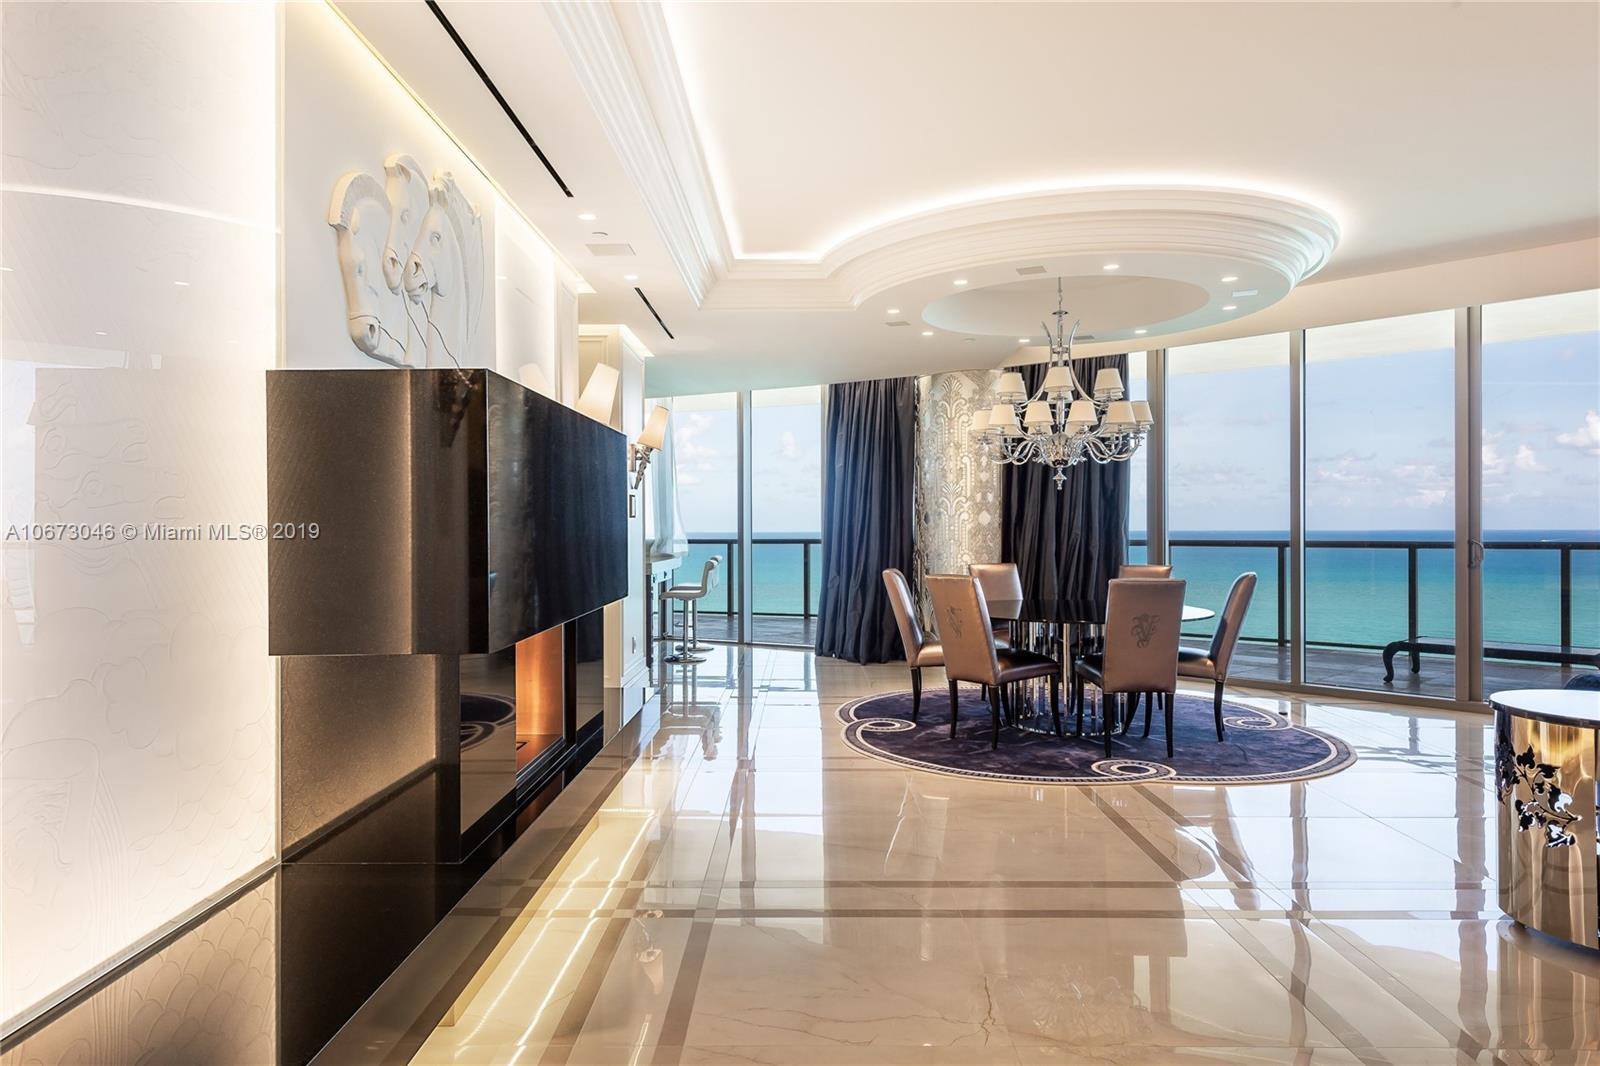 9703 Collins Ave 2600, Bal Harbour, FL 33154